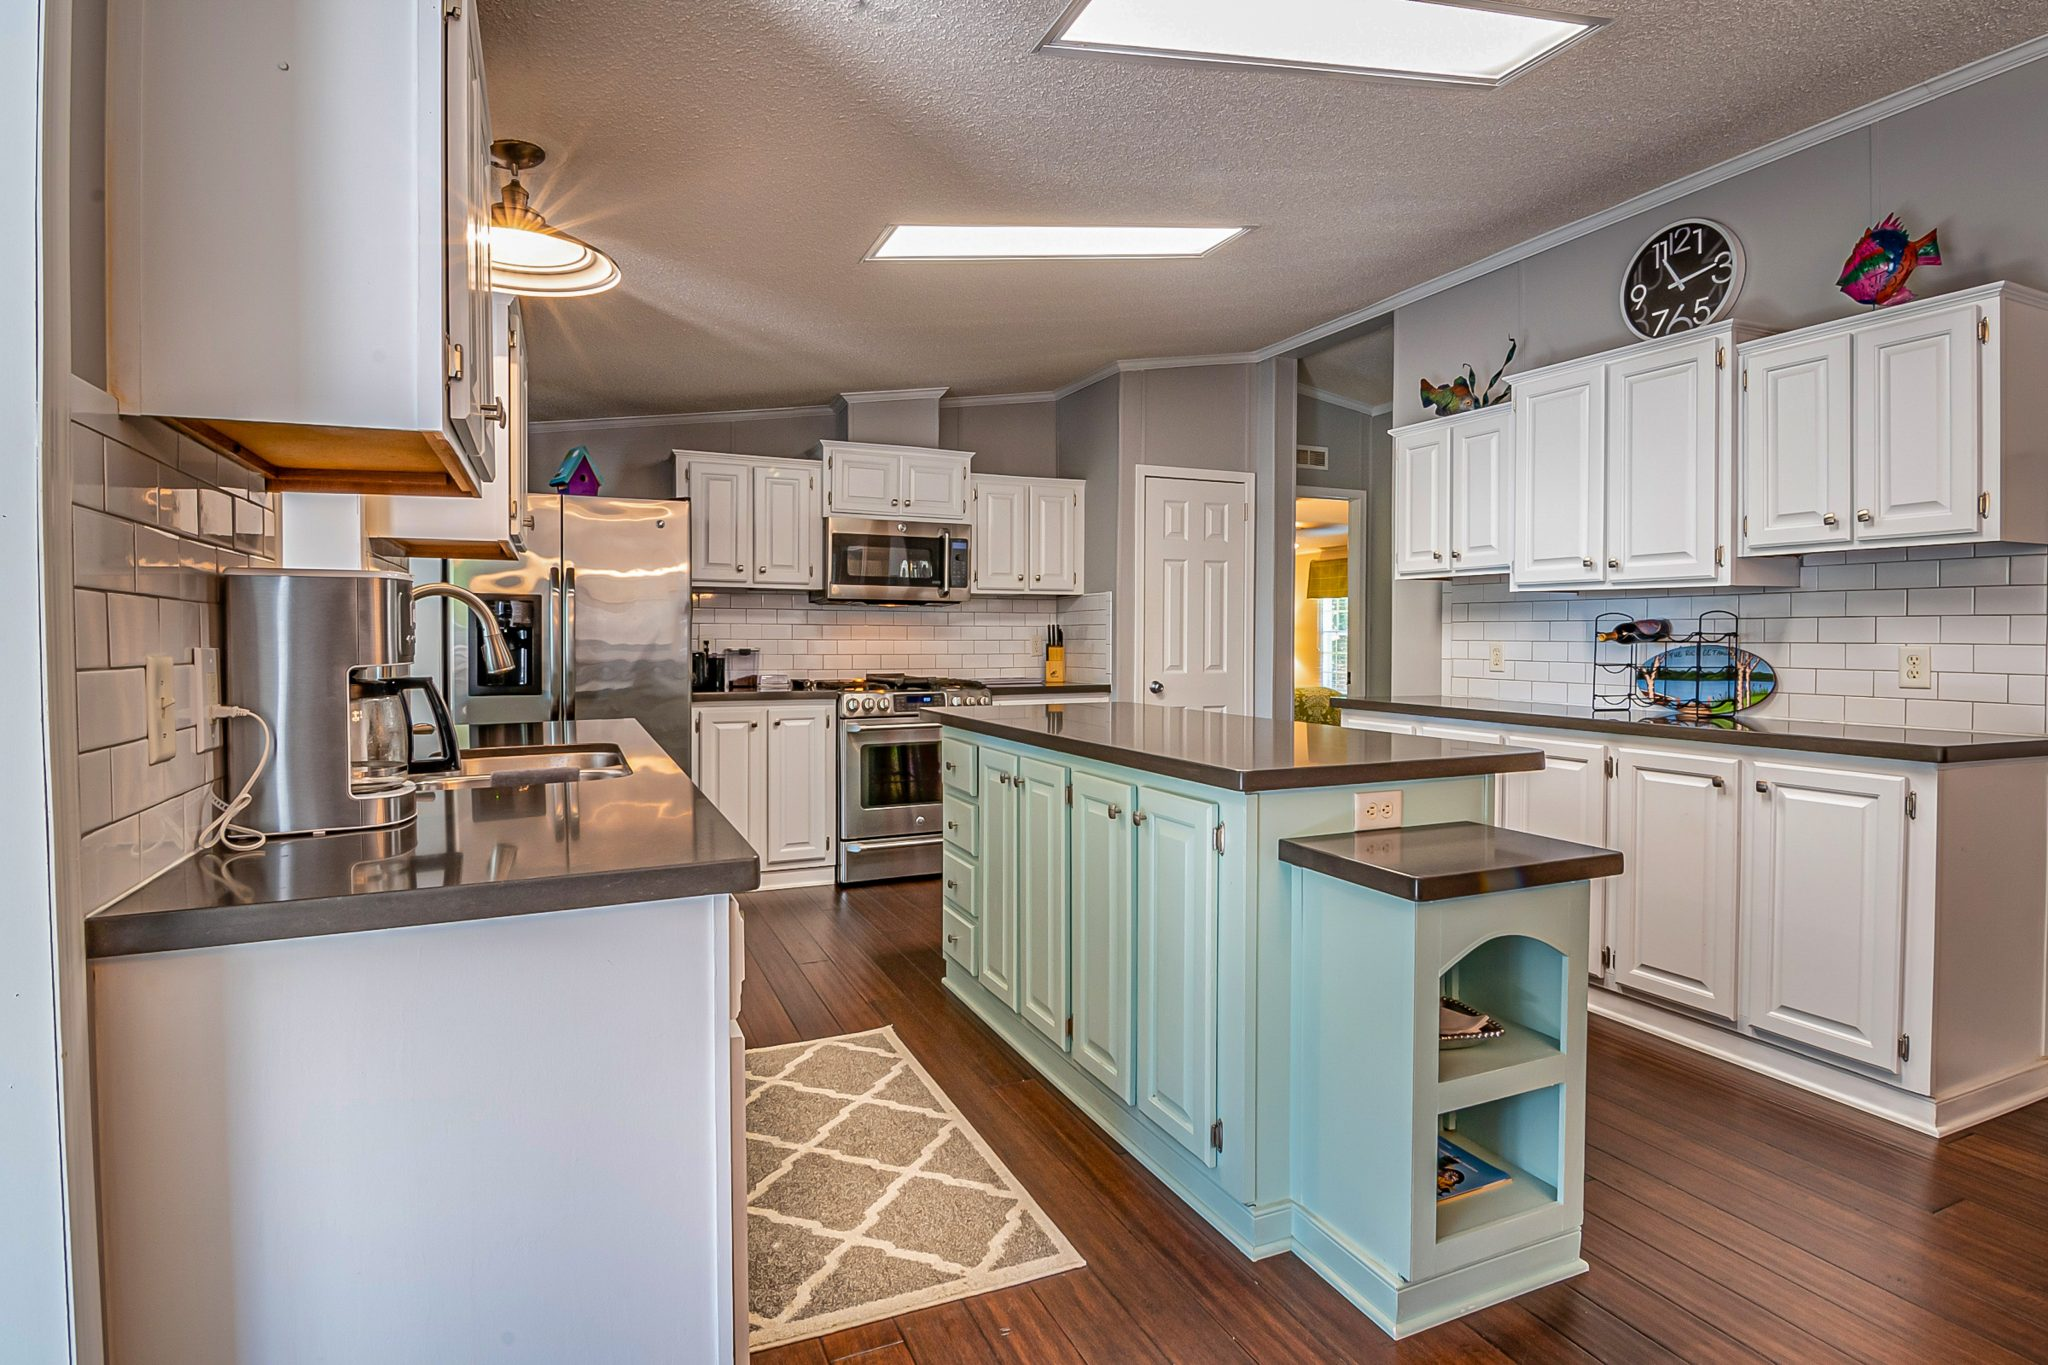 Kitchen Islands: What You Need To Know